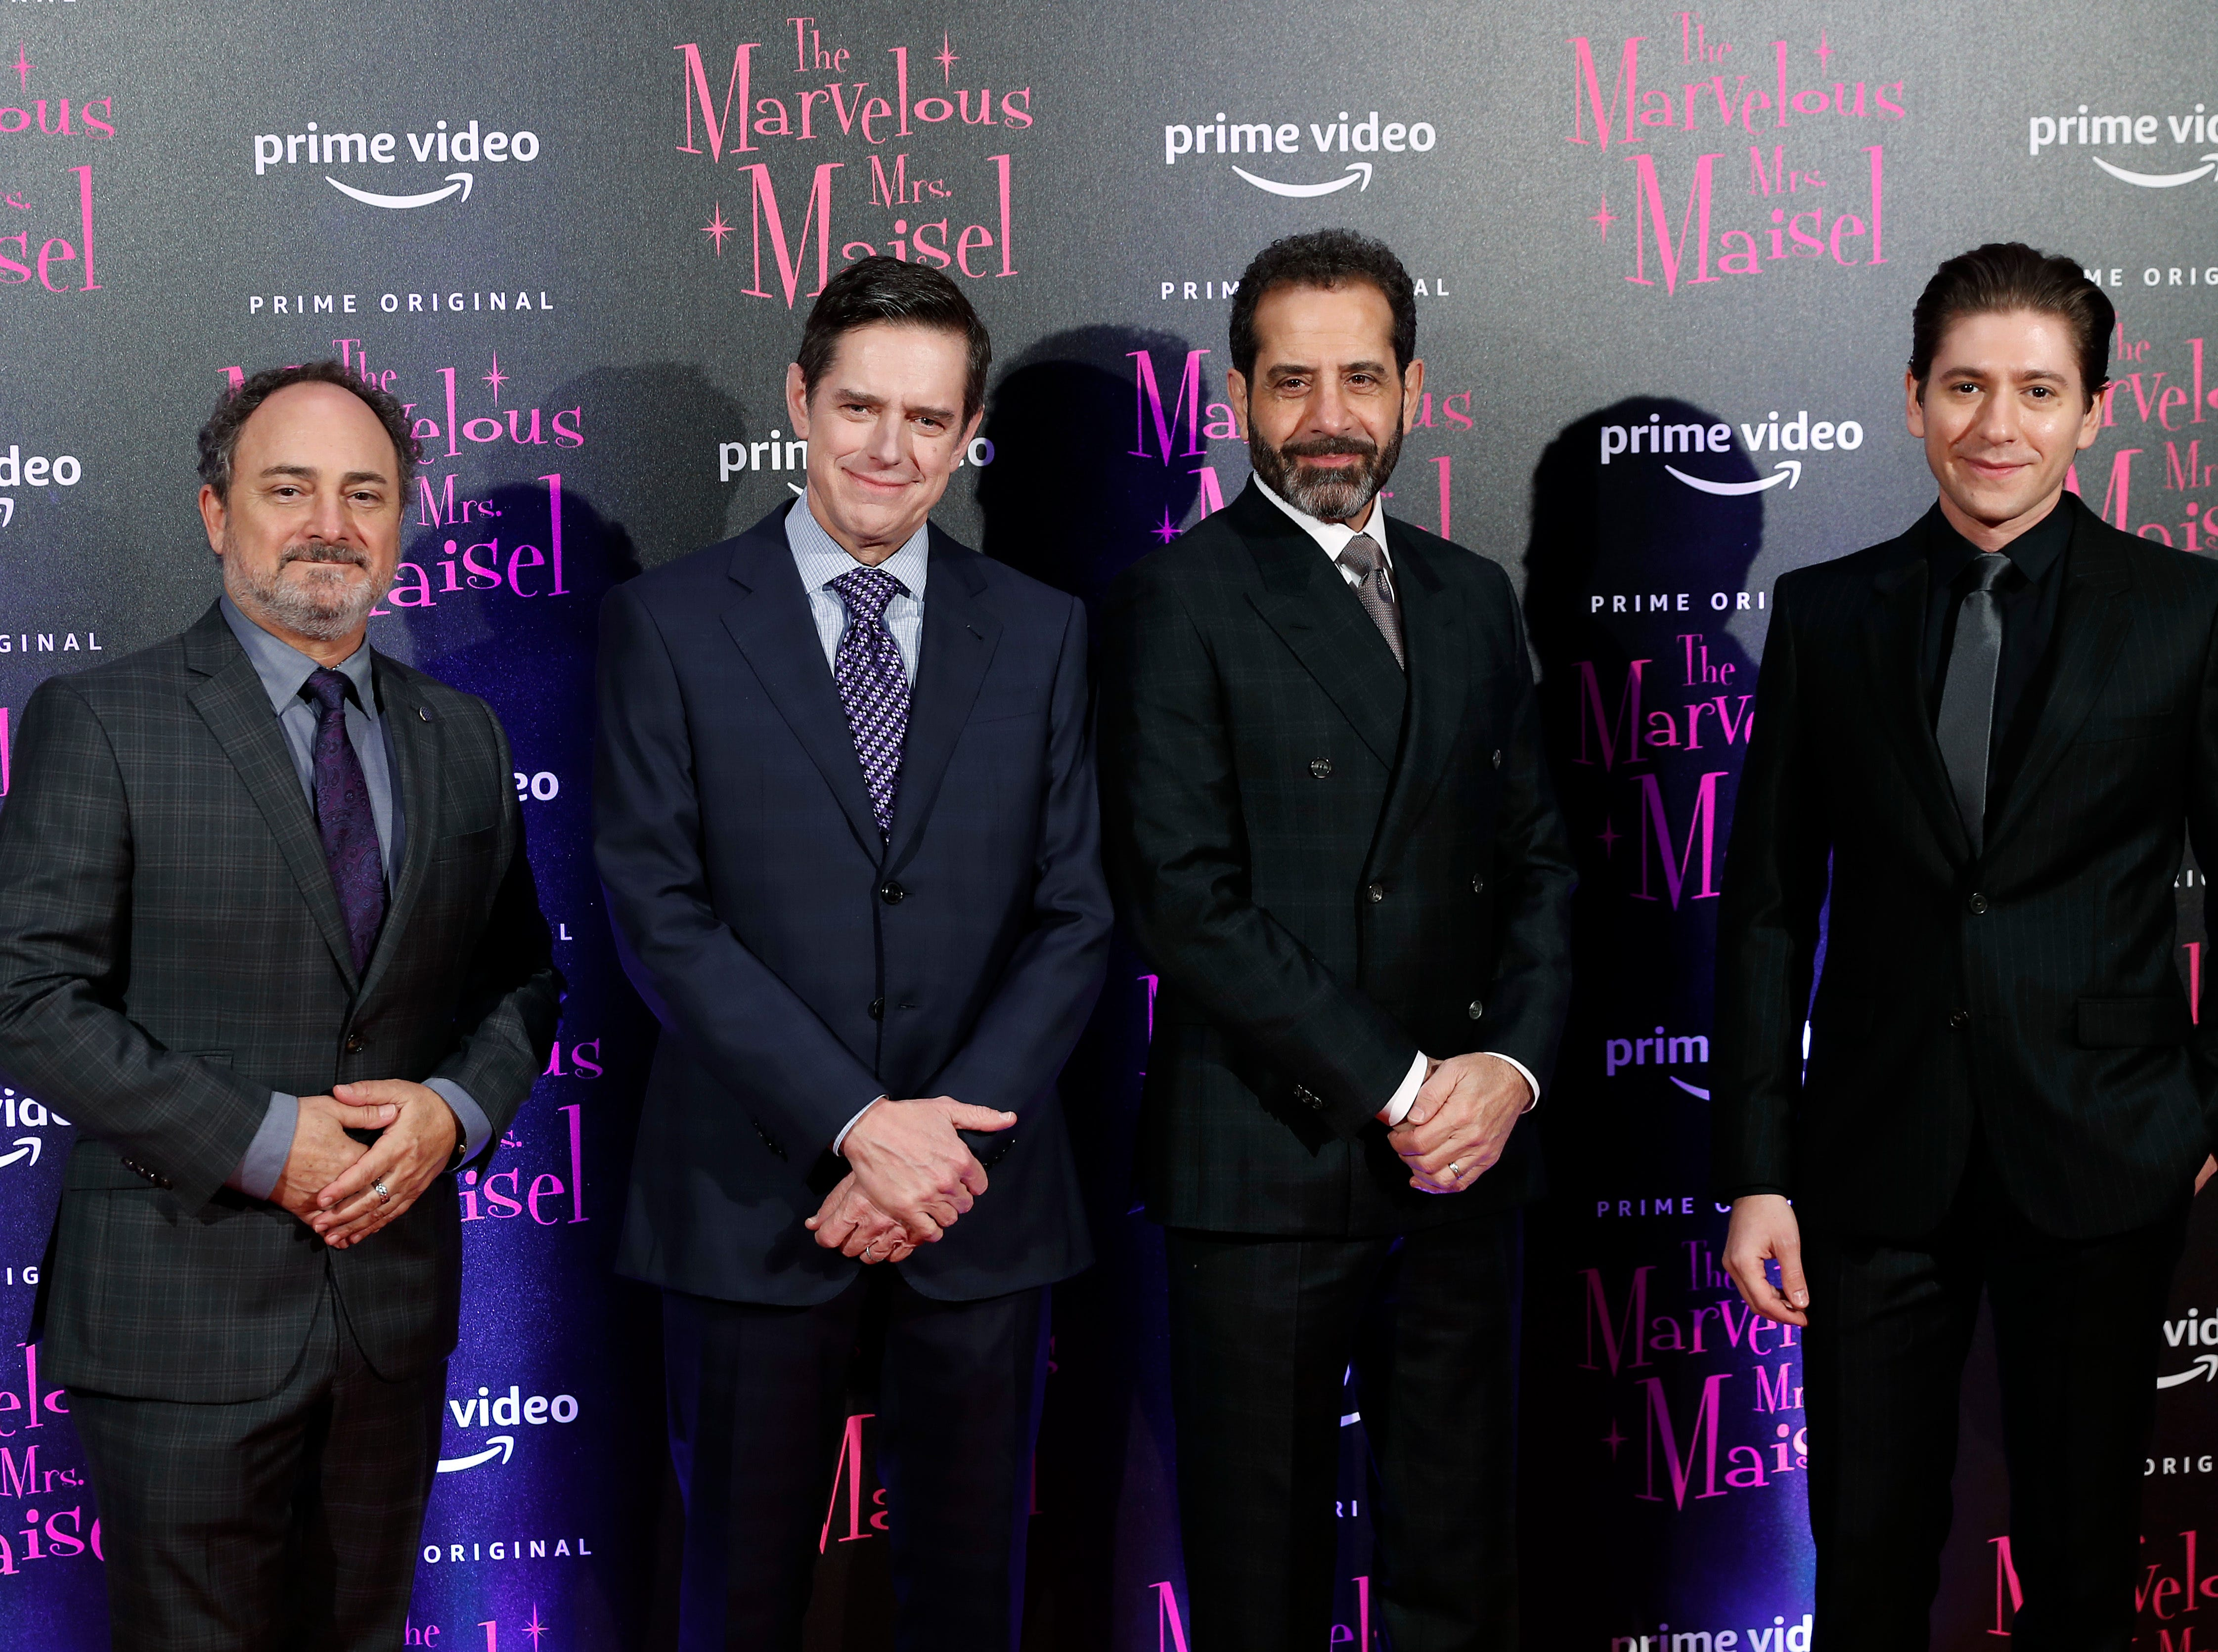 """From left: Kevin Pollack, Dan Palladino, Tony Shalhoub and Michael Zegen pose for photographers with Marin Hinkle, right, and actor Tony Shalhoub at the European Premiere of """"The Marvelous Mrs. Maisel"""" season 2, in Milan, Italy, Monday, Dec. 3, 2018."""